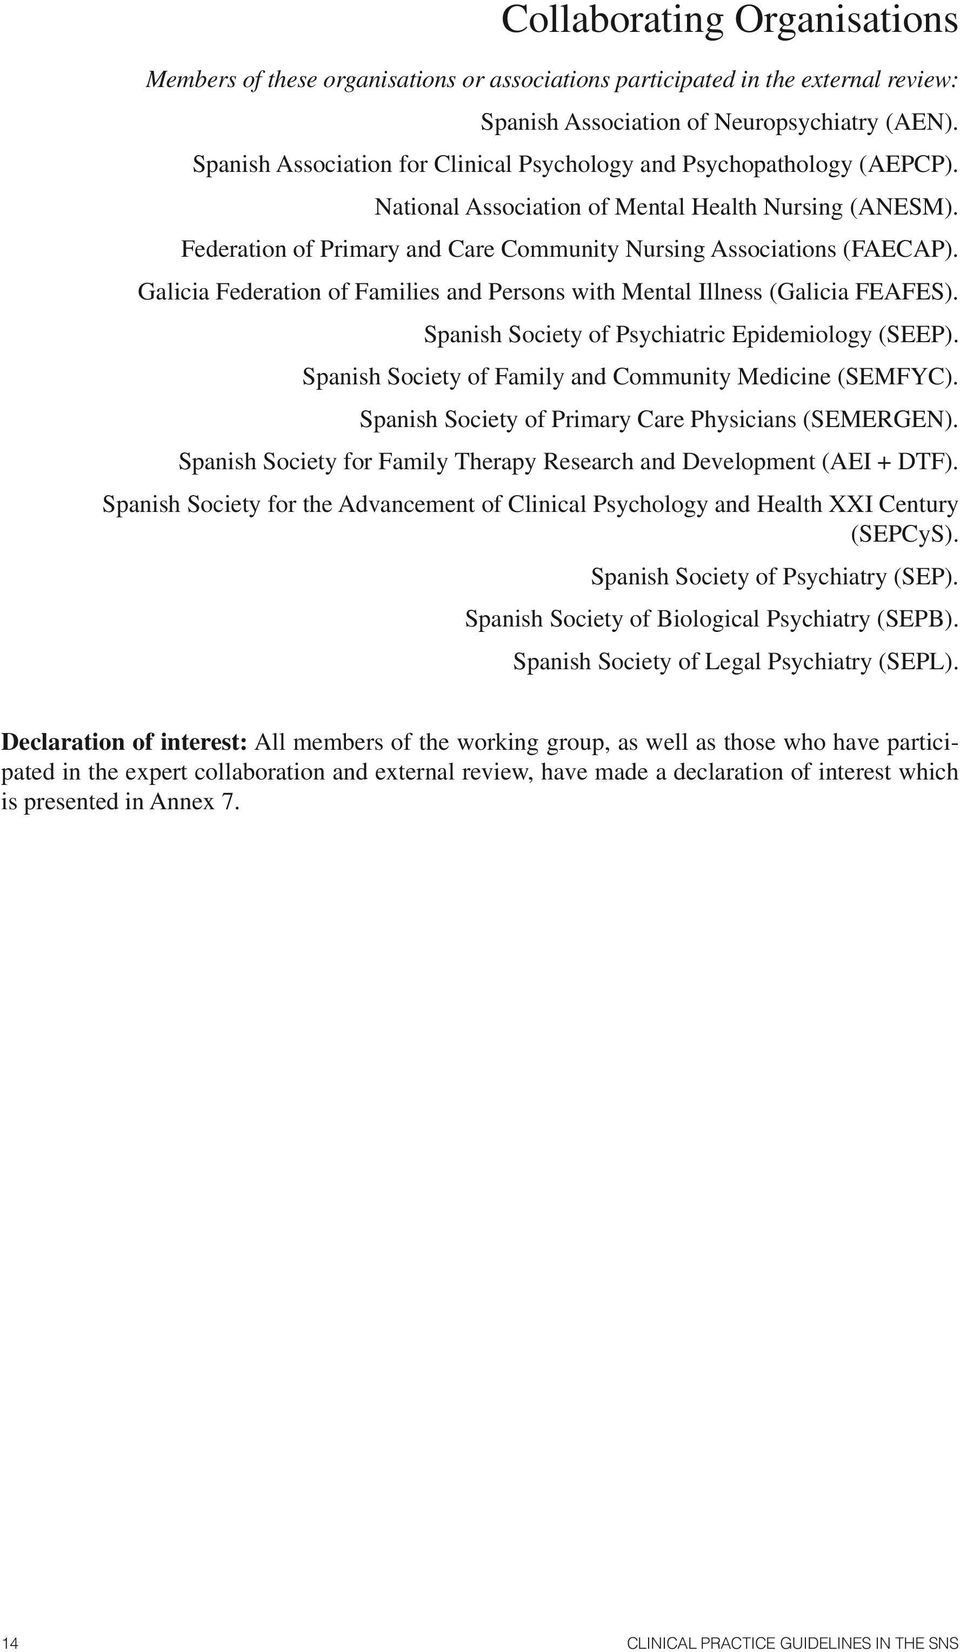 Galicia Federation of Families and Persons with Mental Illness (Galicia FEAFES). Spanish Society of Psychiatric Epidemiology (SEEP). Spanish Society of Family and Community Medicine (SEMFYC).